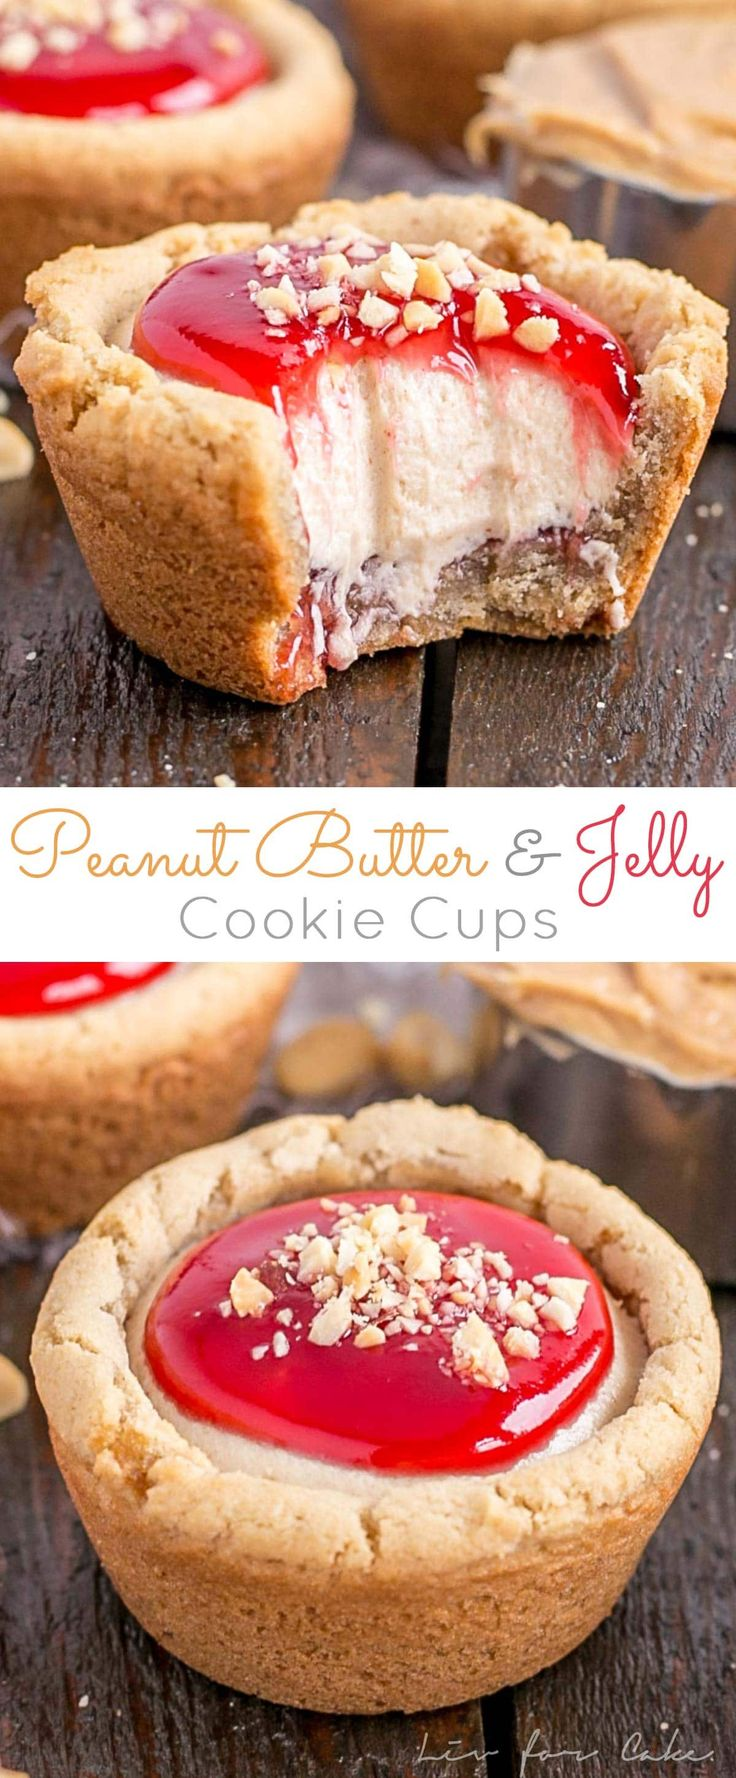 Peanut Butter & Jelly Cookie Cups! Take a lunchbox classic to the next level with these surprisingly easy Peanut Butter & Jelly Cookie Cups!   livforcake.com